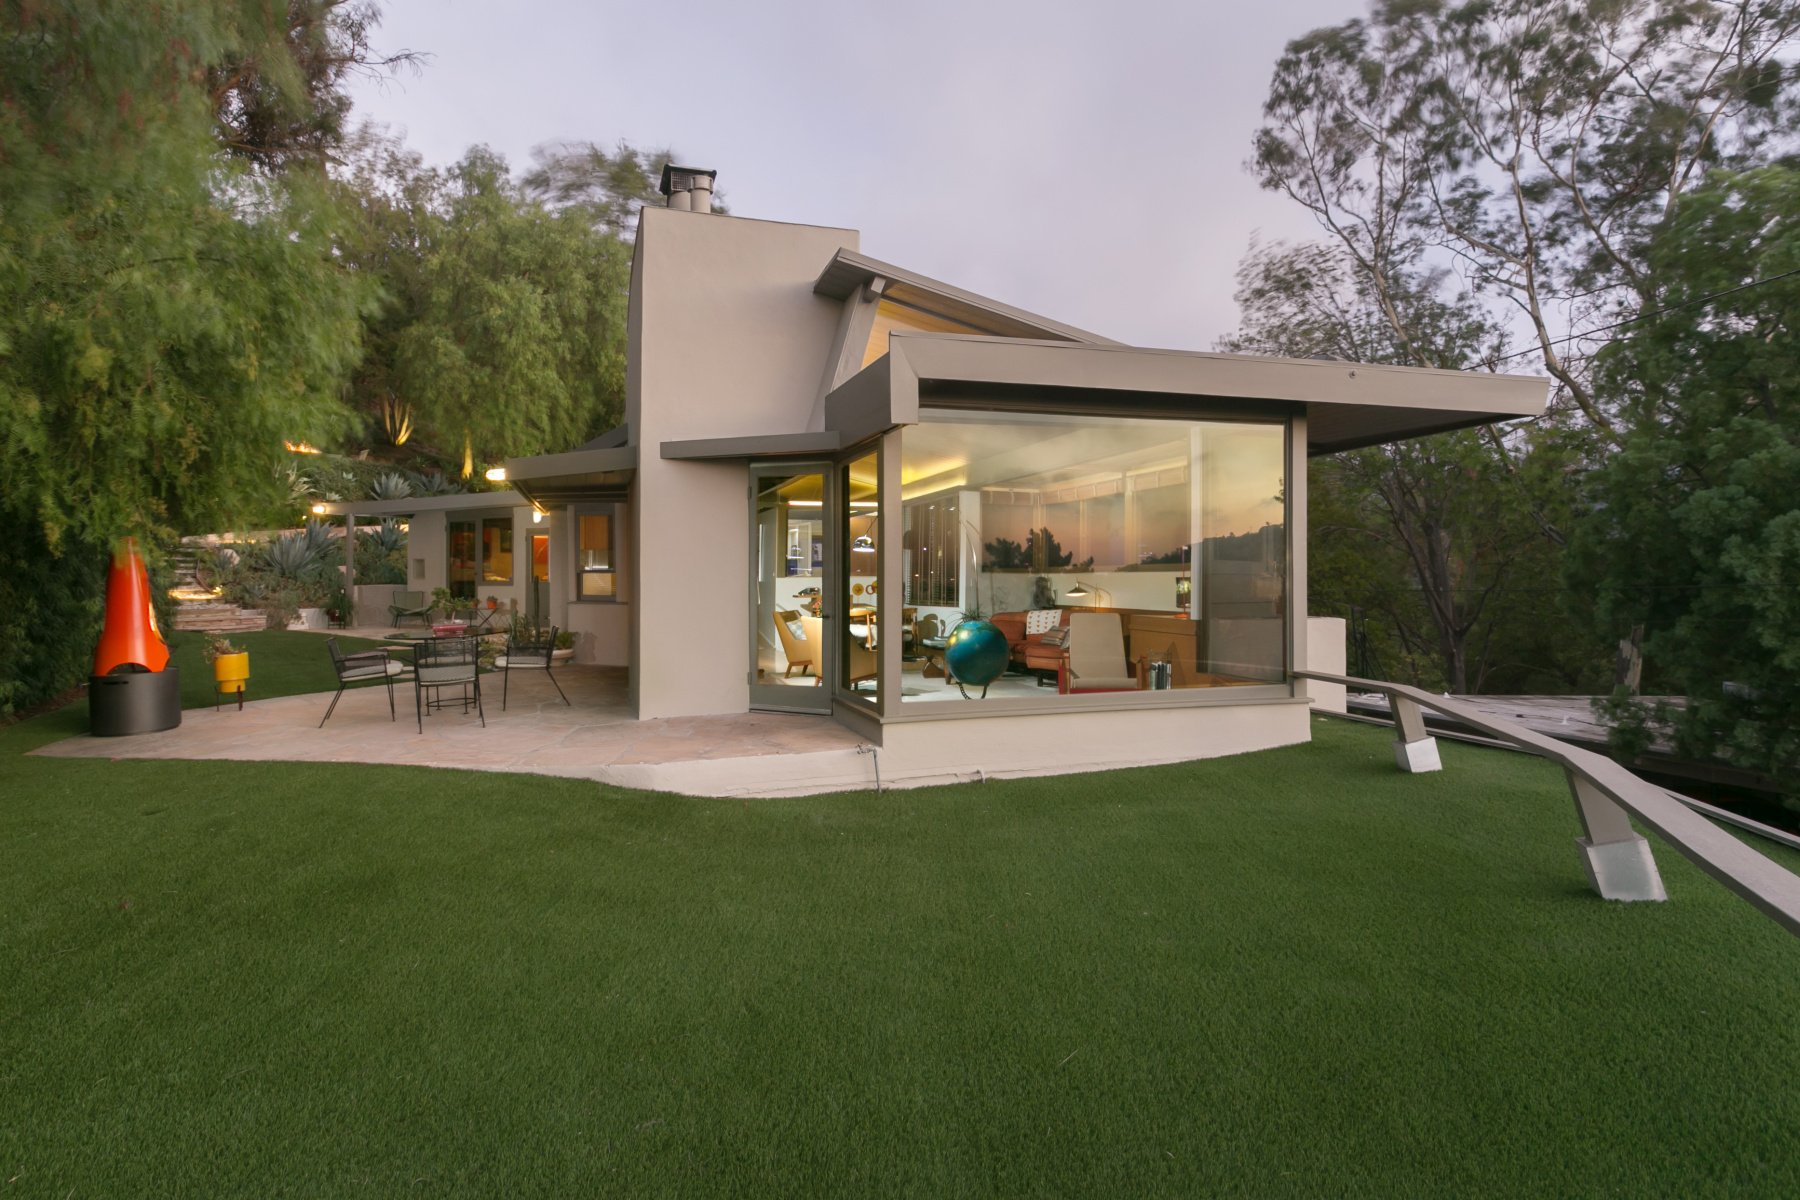 Rudolph Schindler - roxy roth residence - exterior